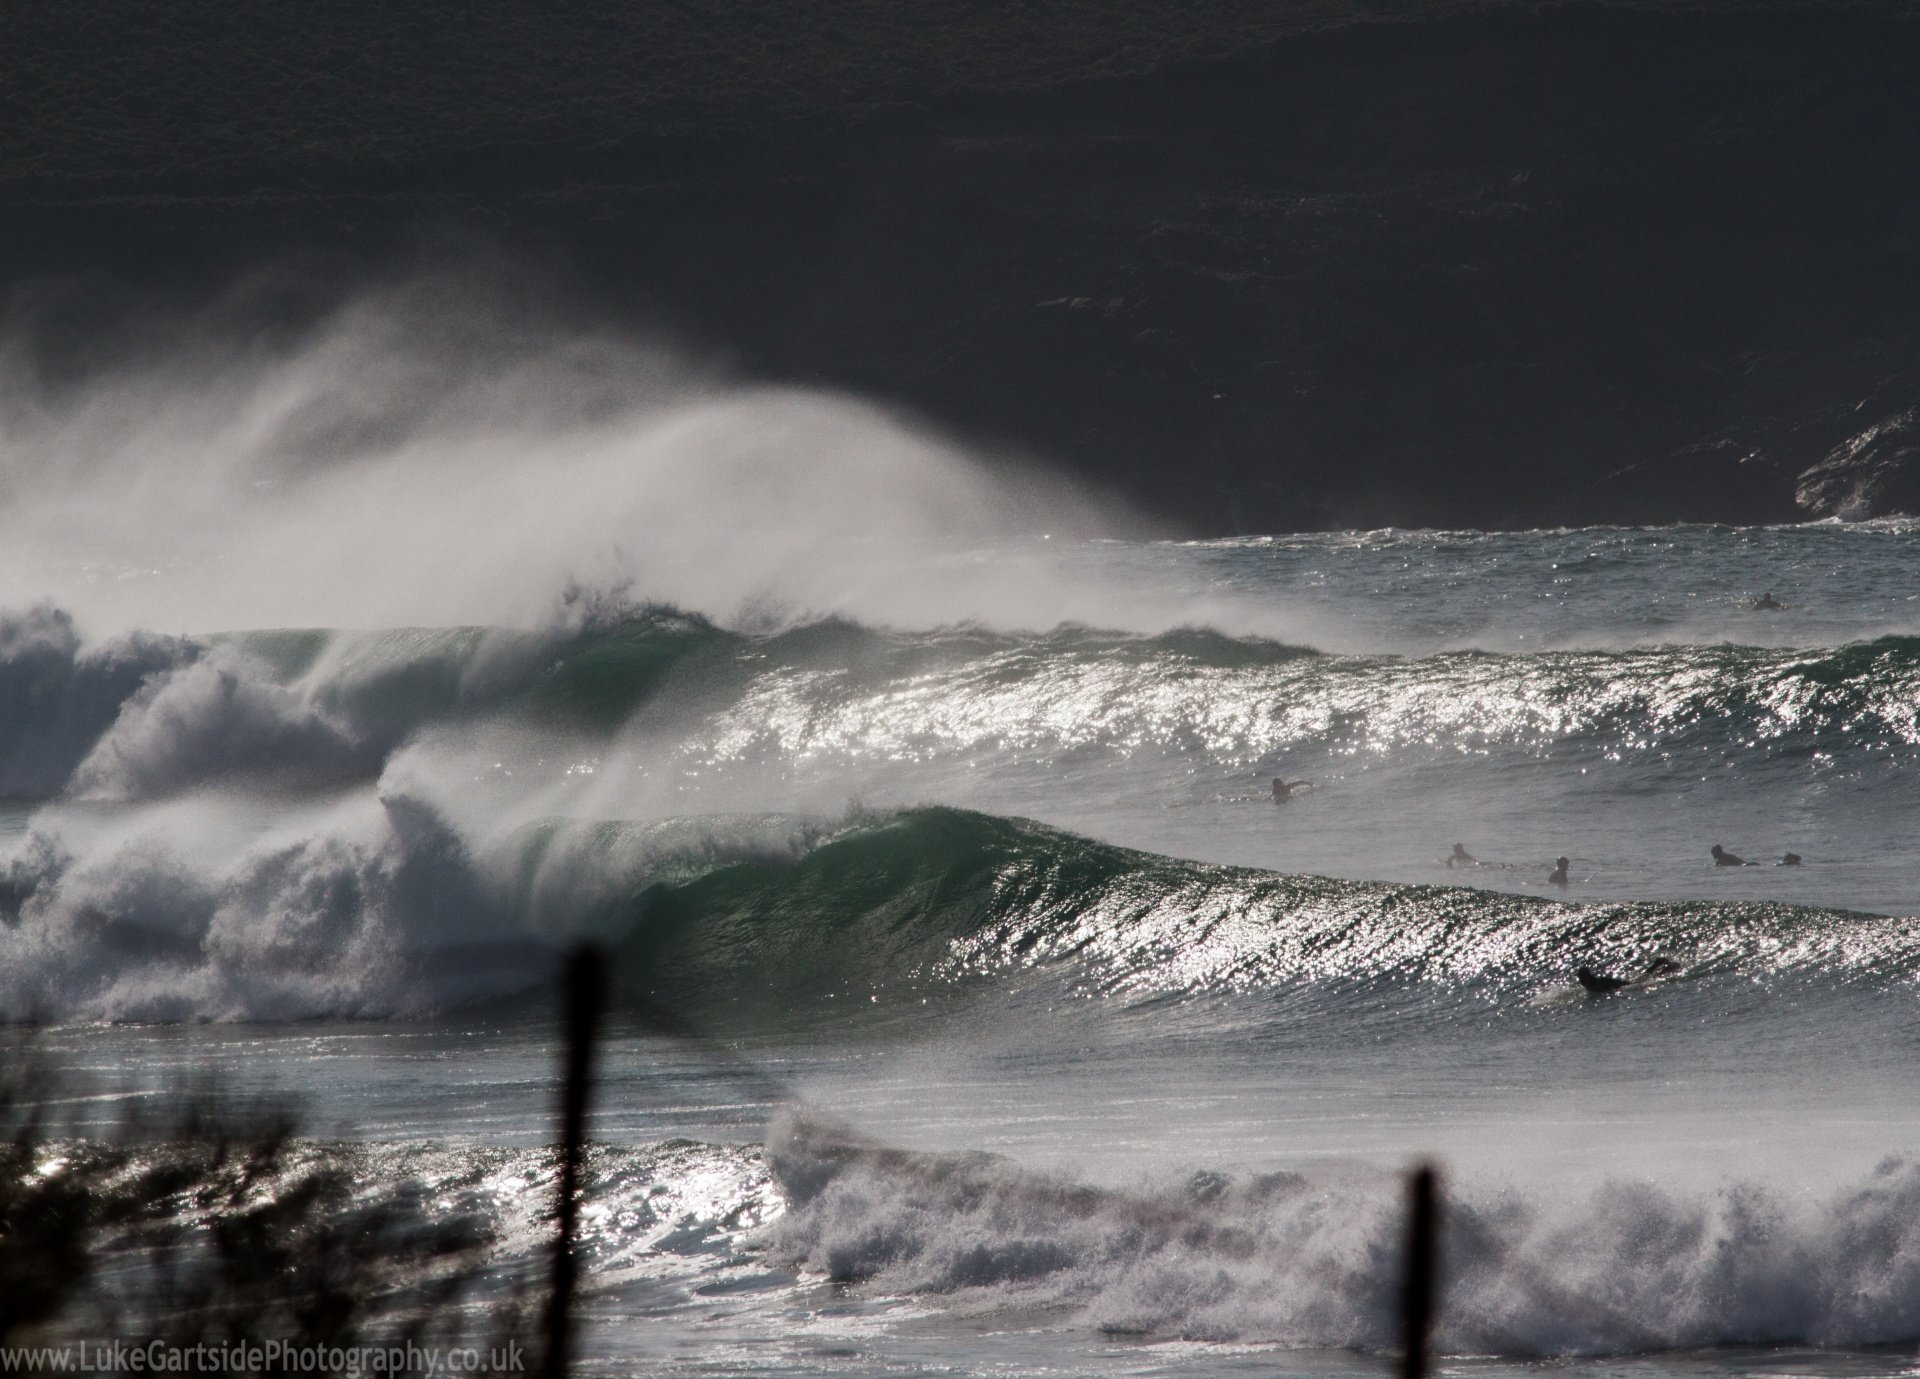 Luke Gartside's photo of Newquay - Fistral North